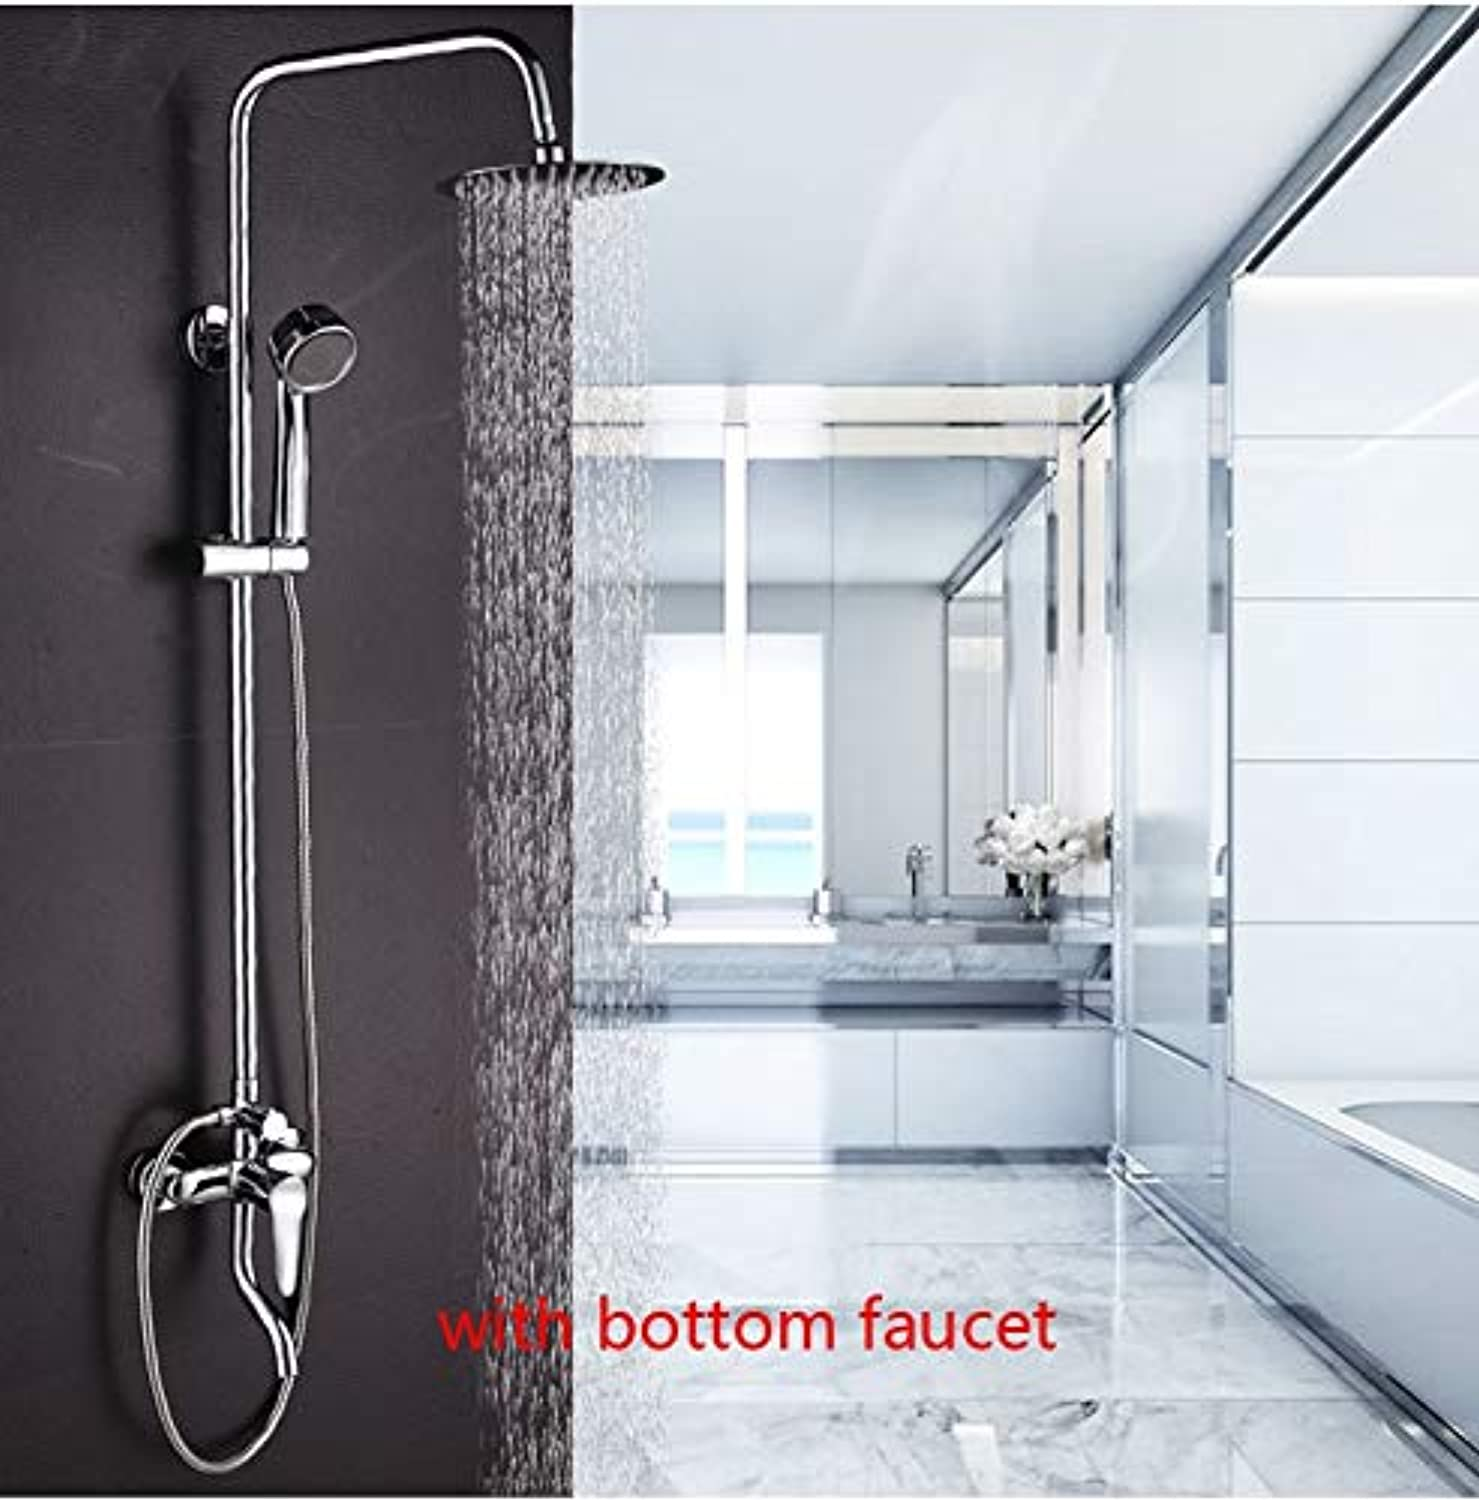 Dofaso 8 inch shower chrome faucet hight Brushed stainless Rain Shower Set Tub And chrome Faucet Shower tap Shower System,round head